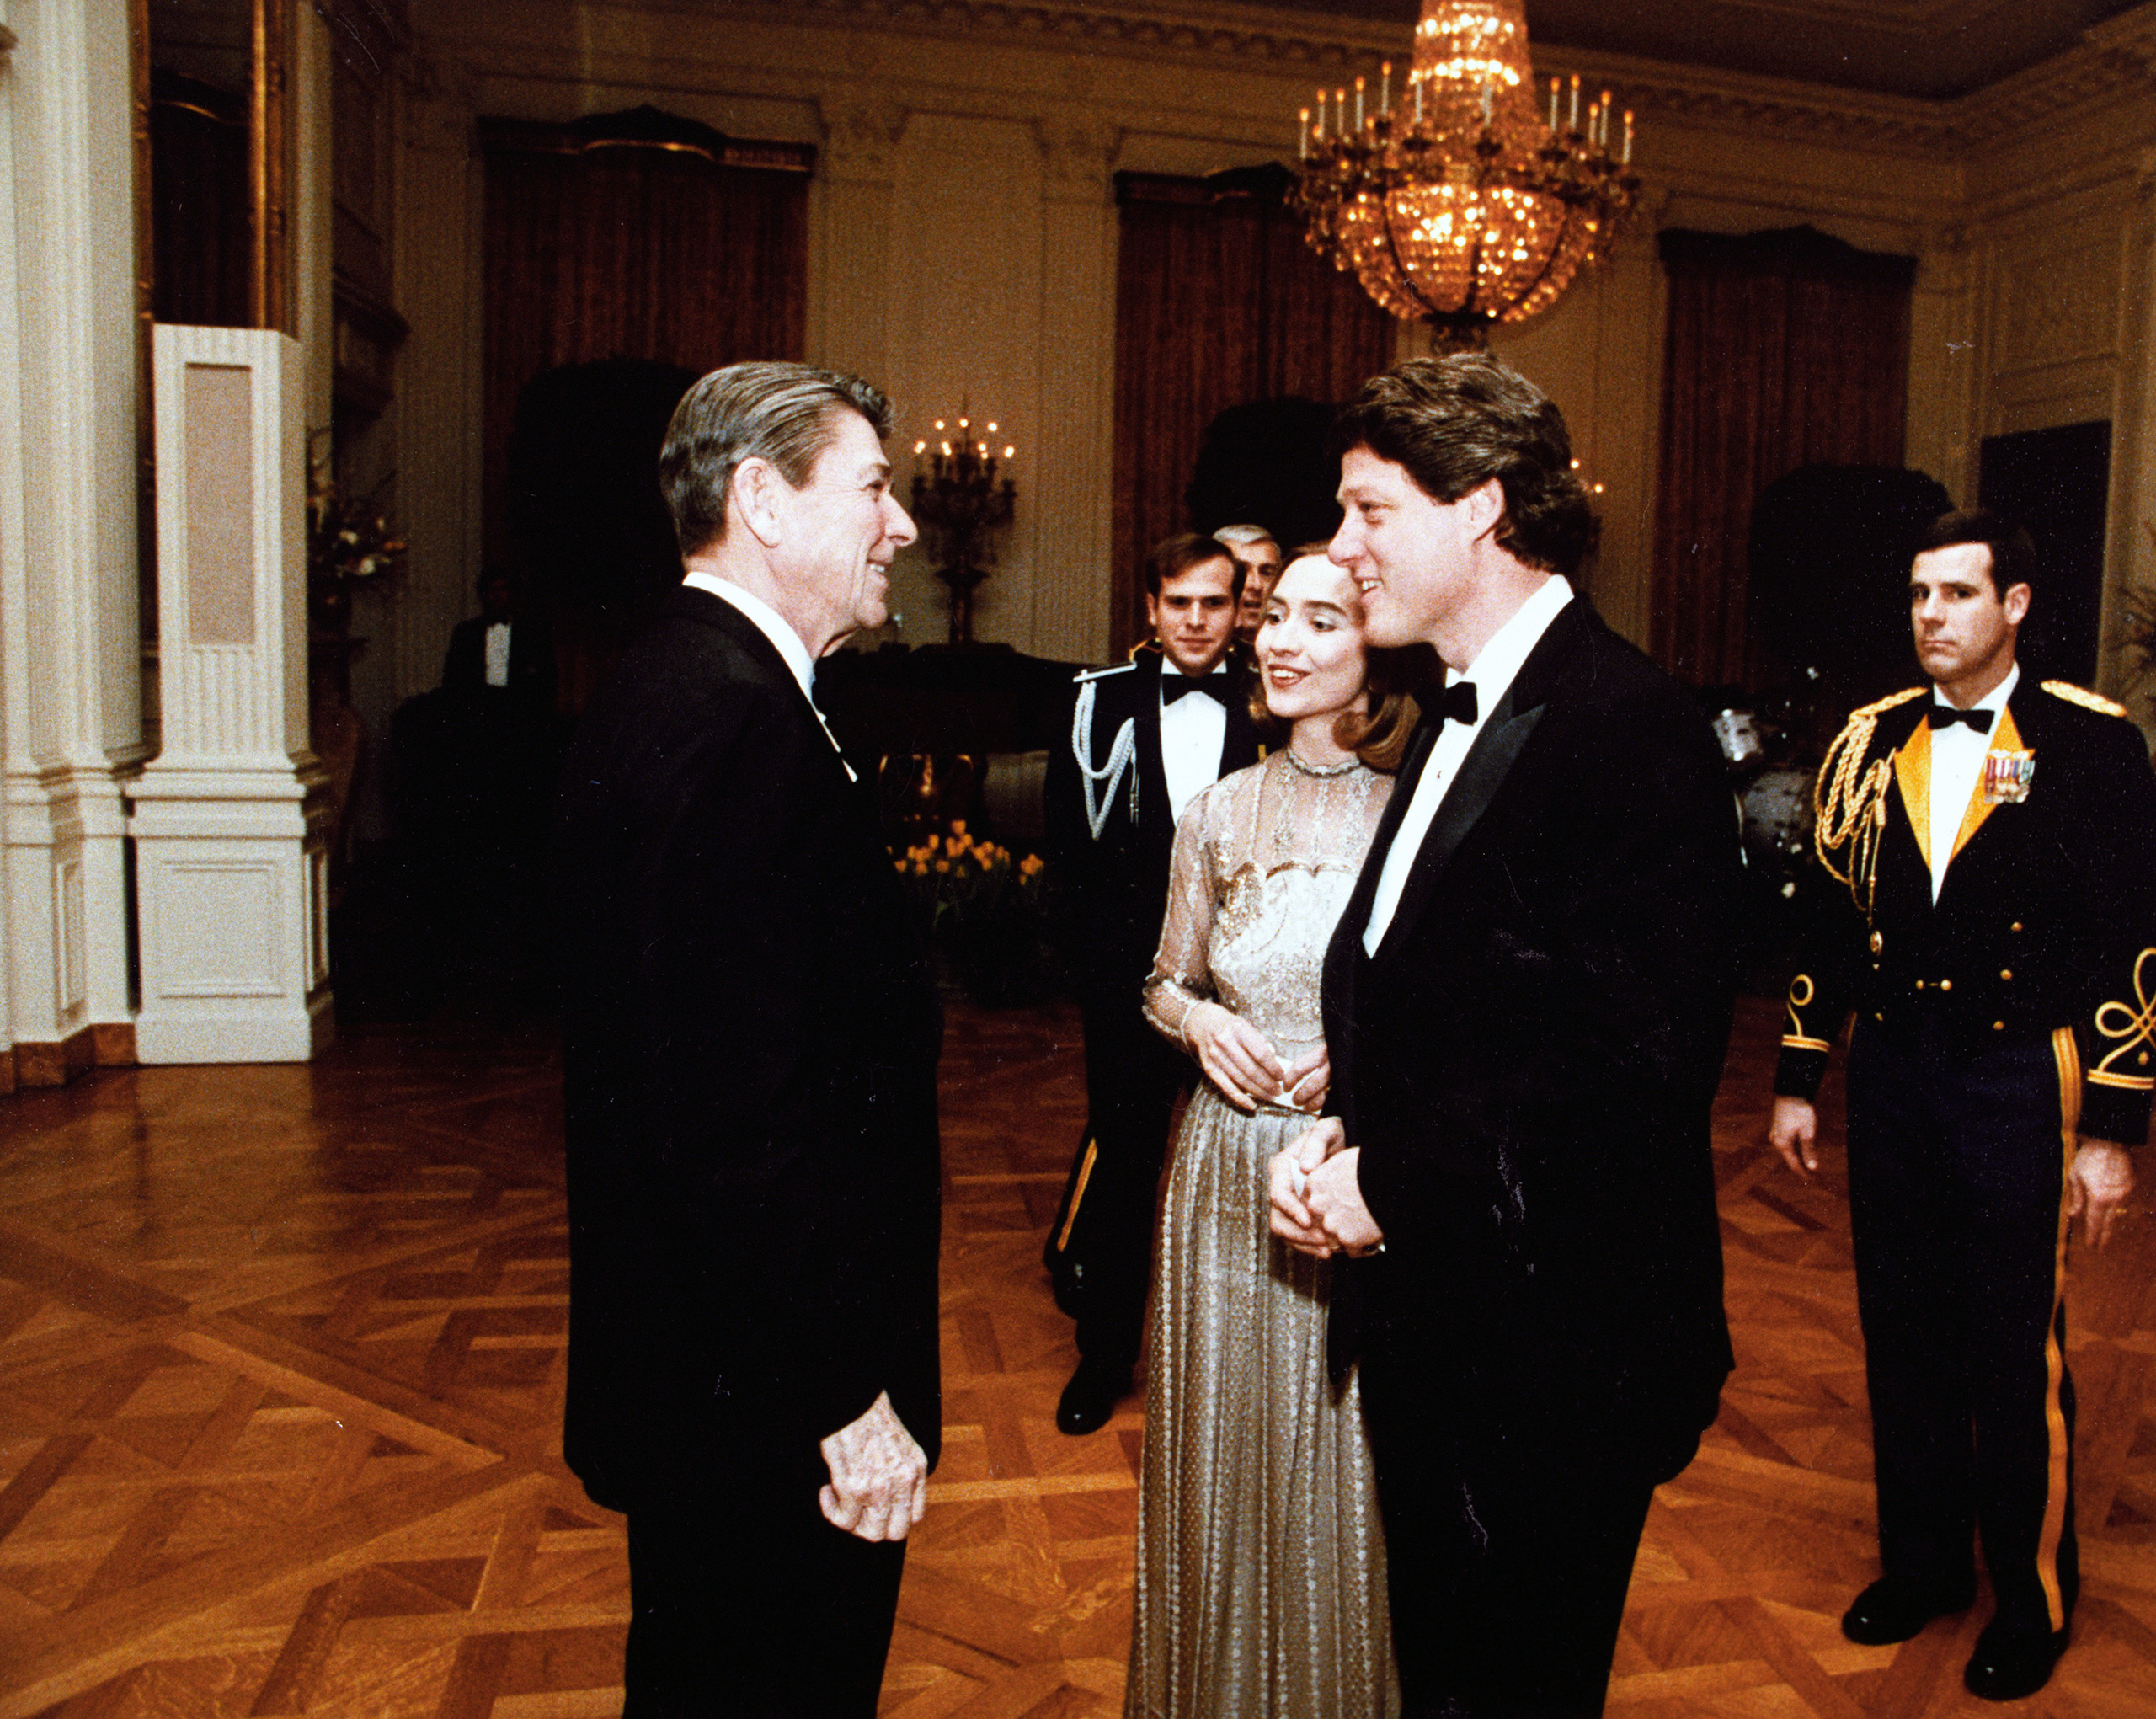 Hillary and Bill meeting President Reagan, March 1983.